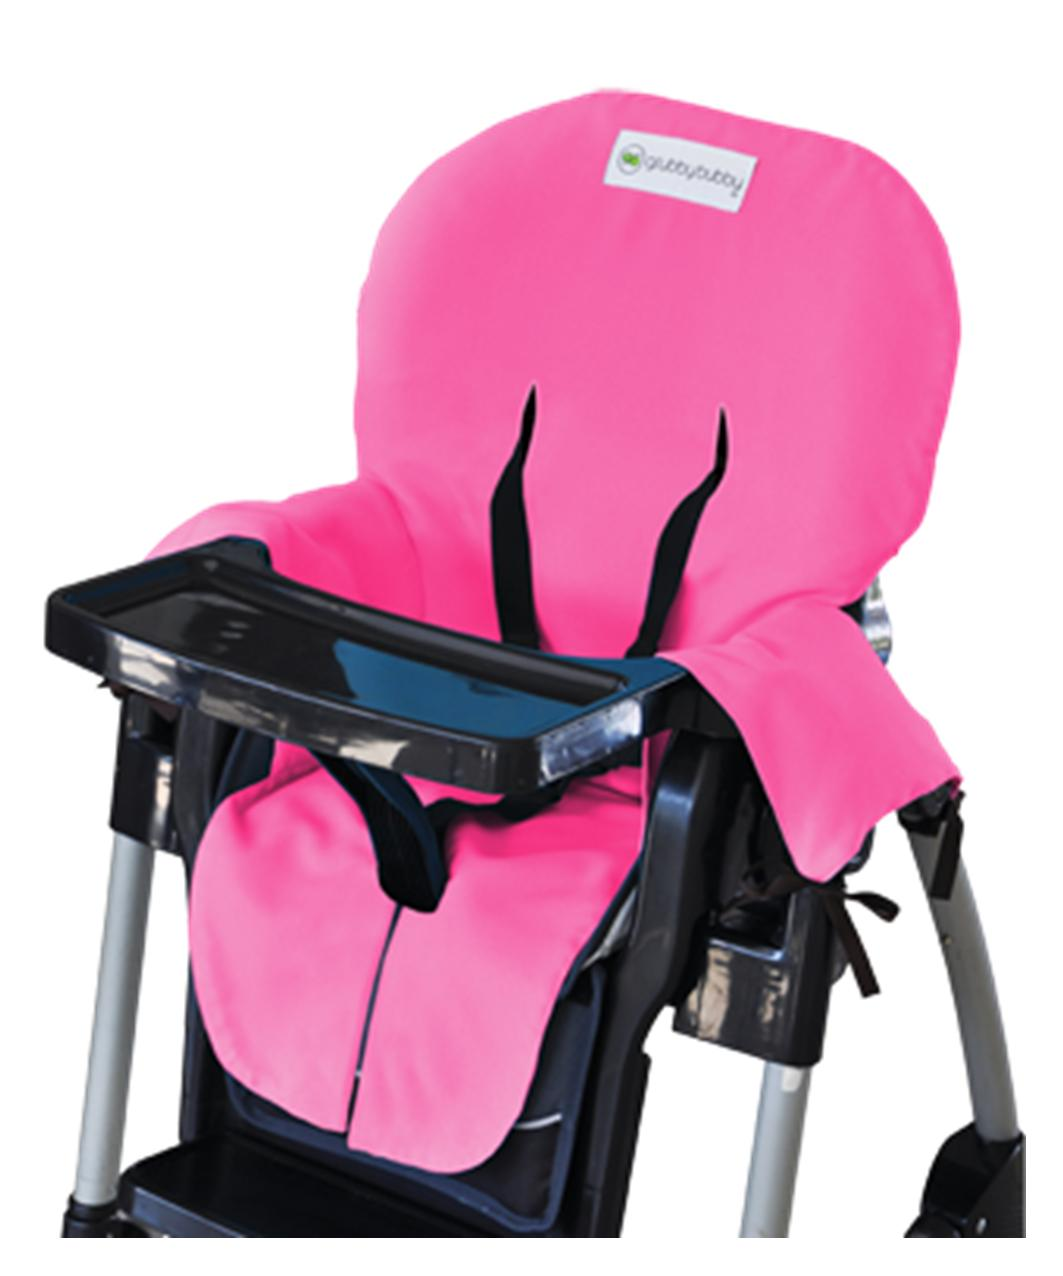 Excellent Grubby Bubby High Chair Rocker Cover Fuchia Pink 15 00 Caraccident5 Cool Chair Designs And Ideas Caraccident5Info